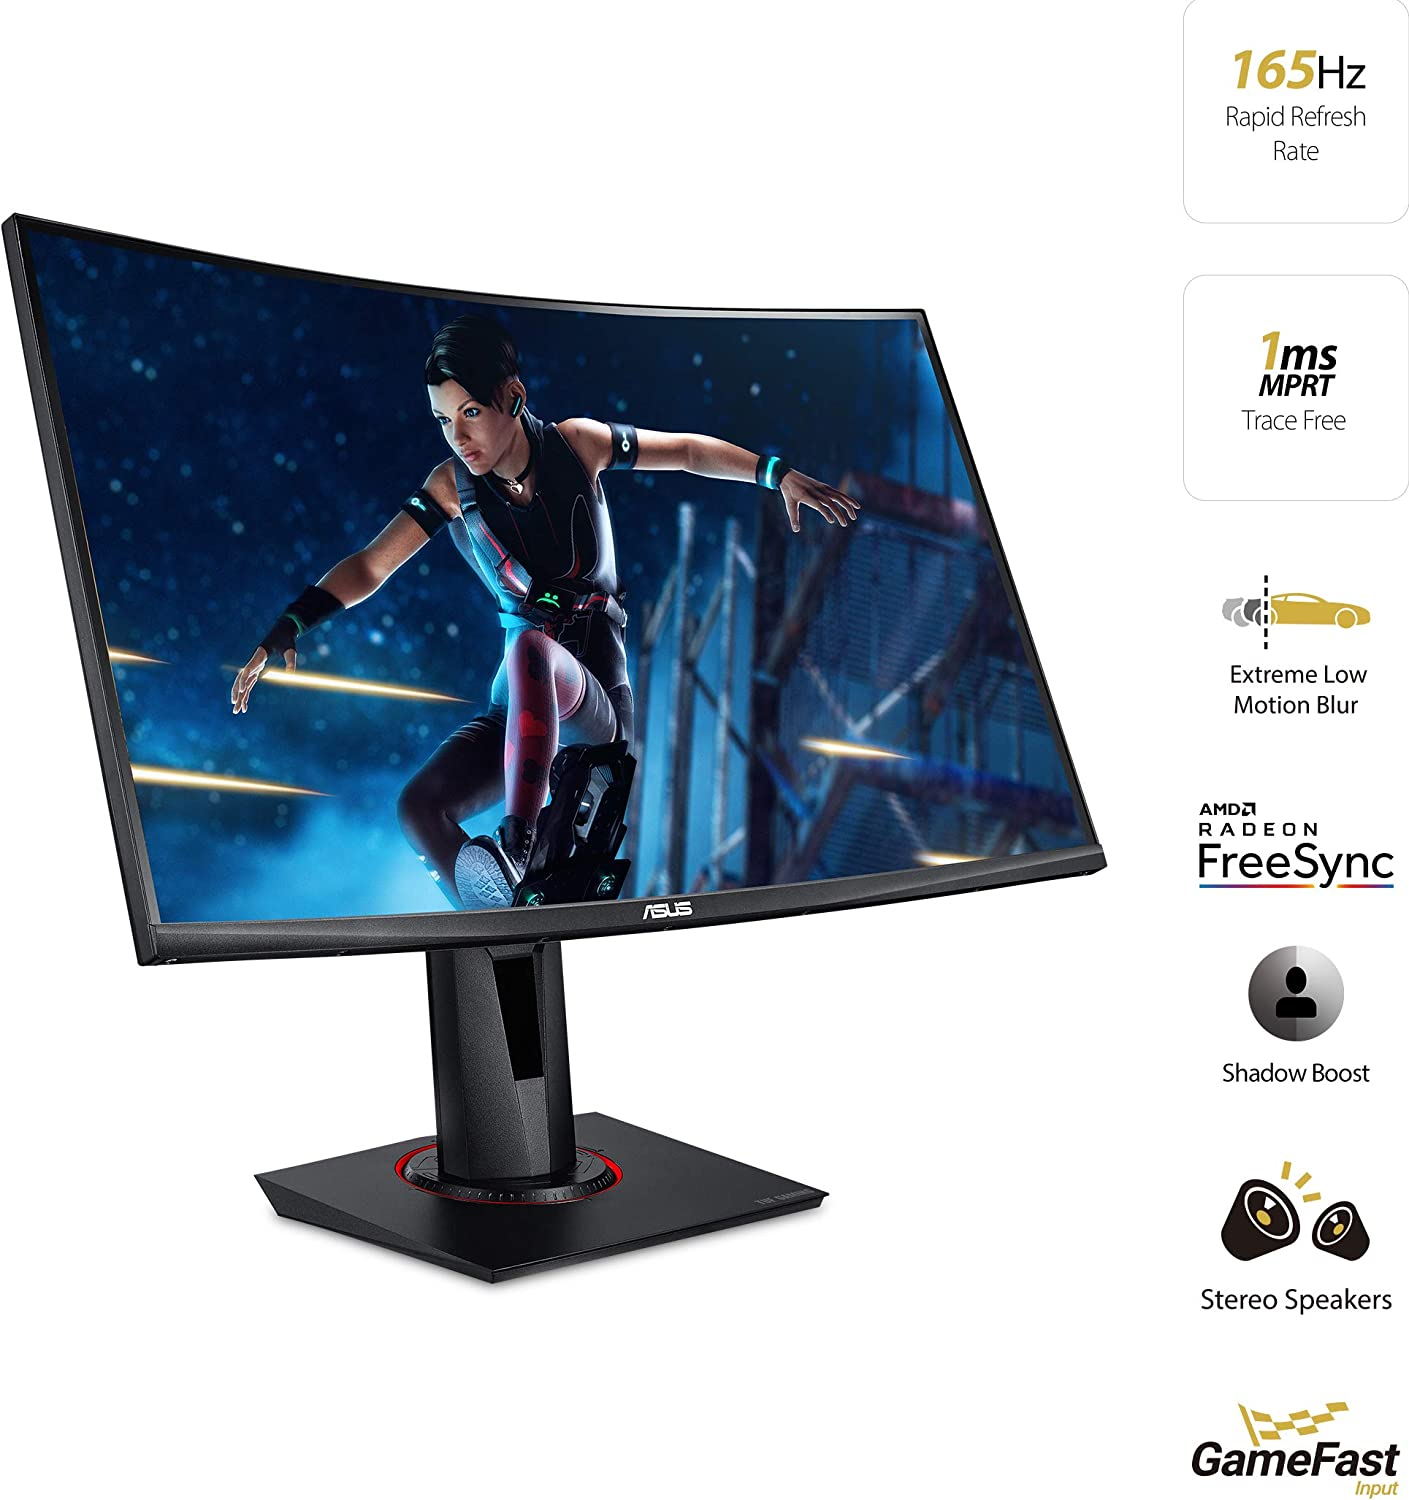 Amazon Com Asus Tuf Gaming Vg27vq 27 Curved Monitor 1080p Full Hd 165hz Supports 144hz Freesync 1ms Extreme Low Motion Blur Eye Care Displayport Hdmi Black Computers Accessories